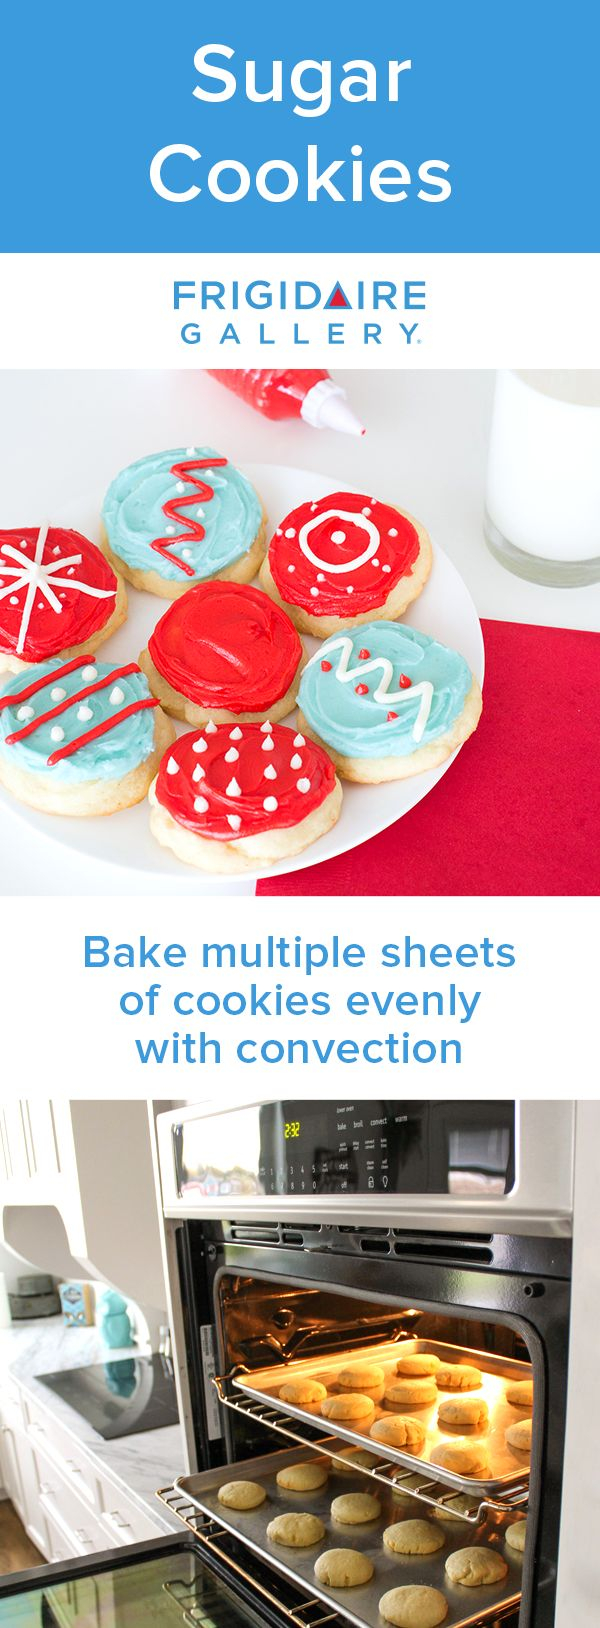 Try this quick & easy recipe from @happymoneysaver for a festive holiday treat. No long hours baking in the kitchen necessary! Click for full recipe.